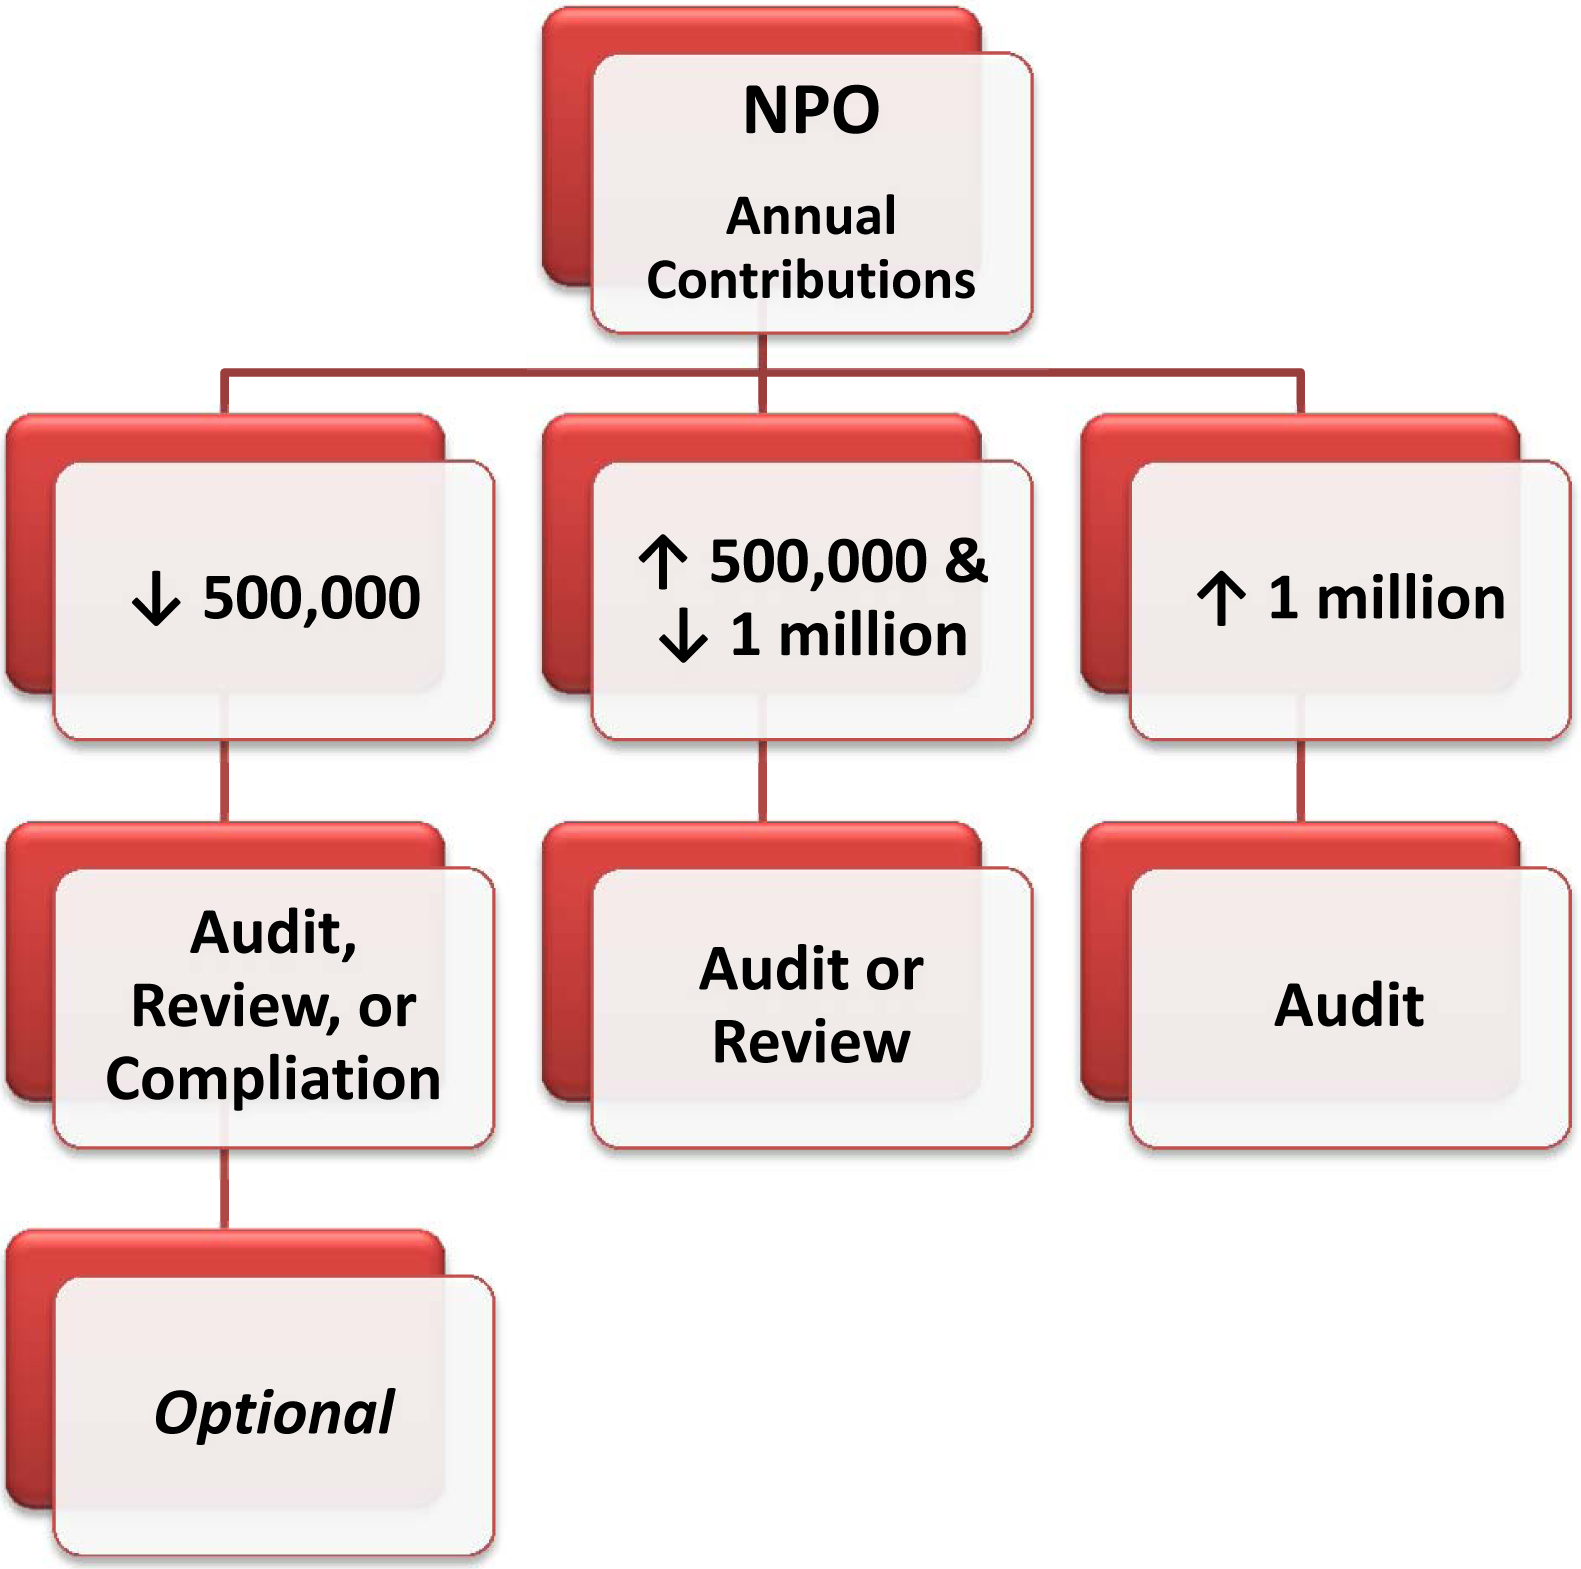 npo annual contributions audit review compilations